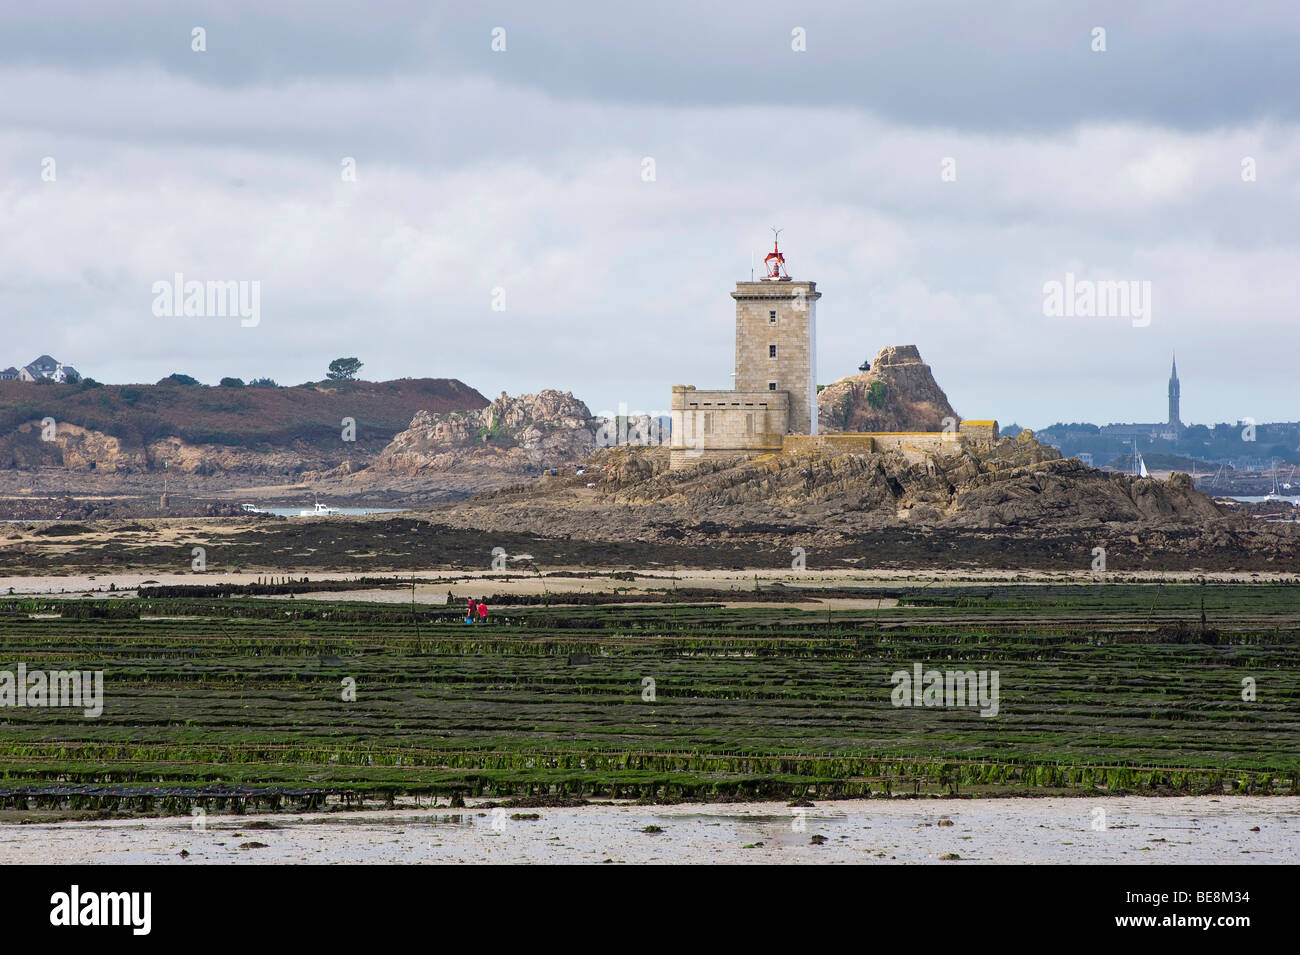 Oyster beds in the Bay of Morlaix with the lighthouse on Ile Noire, Brittany, Finistere, France, Europe Stock Photo